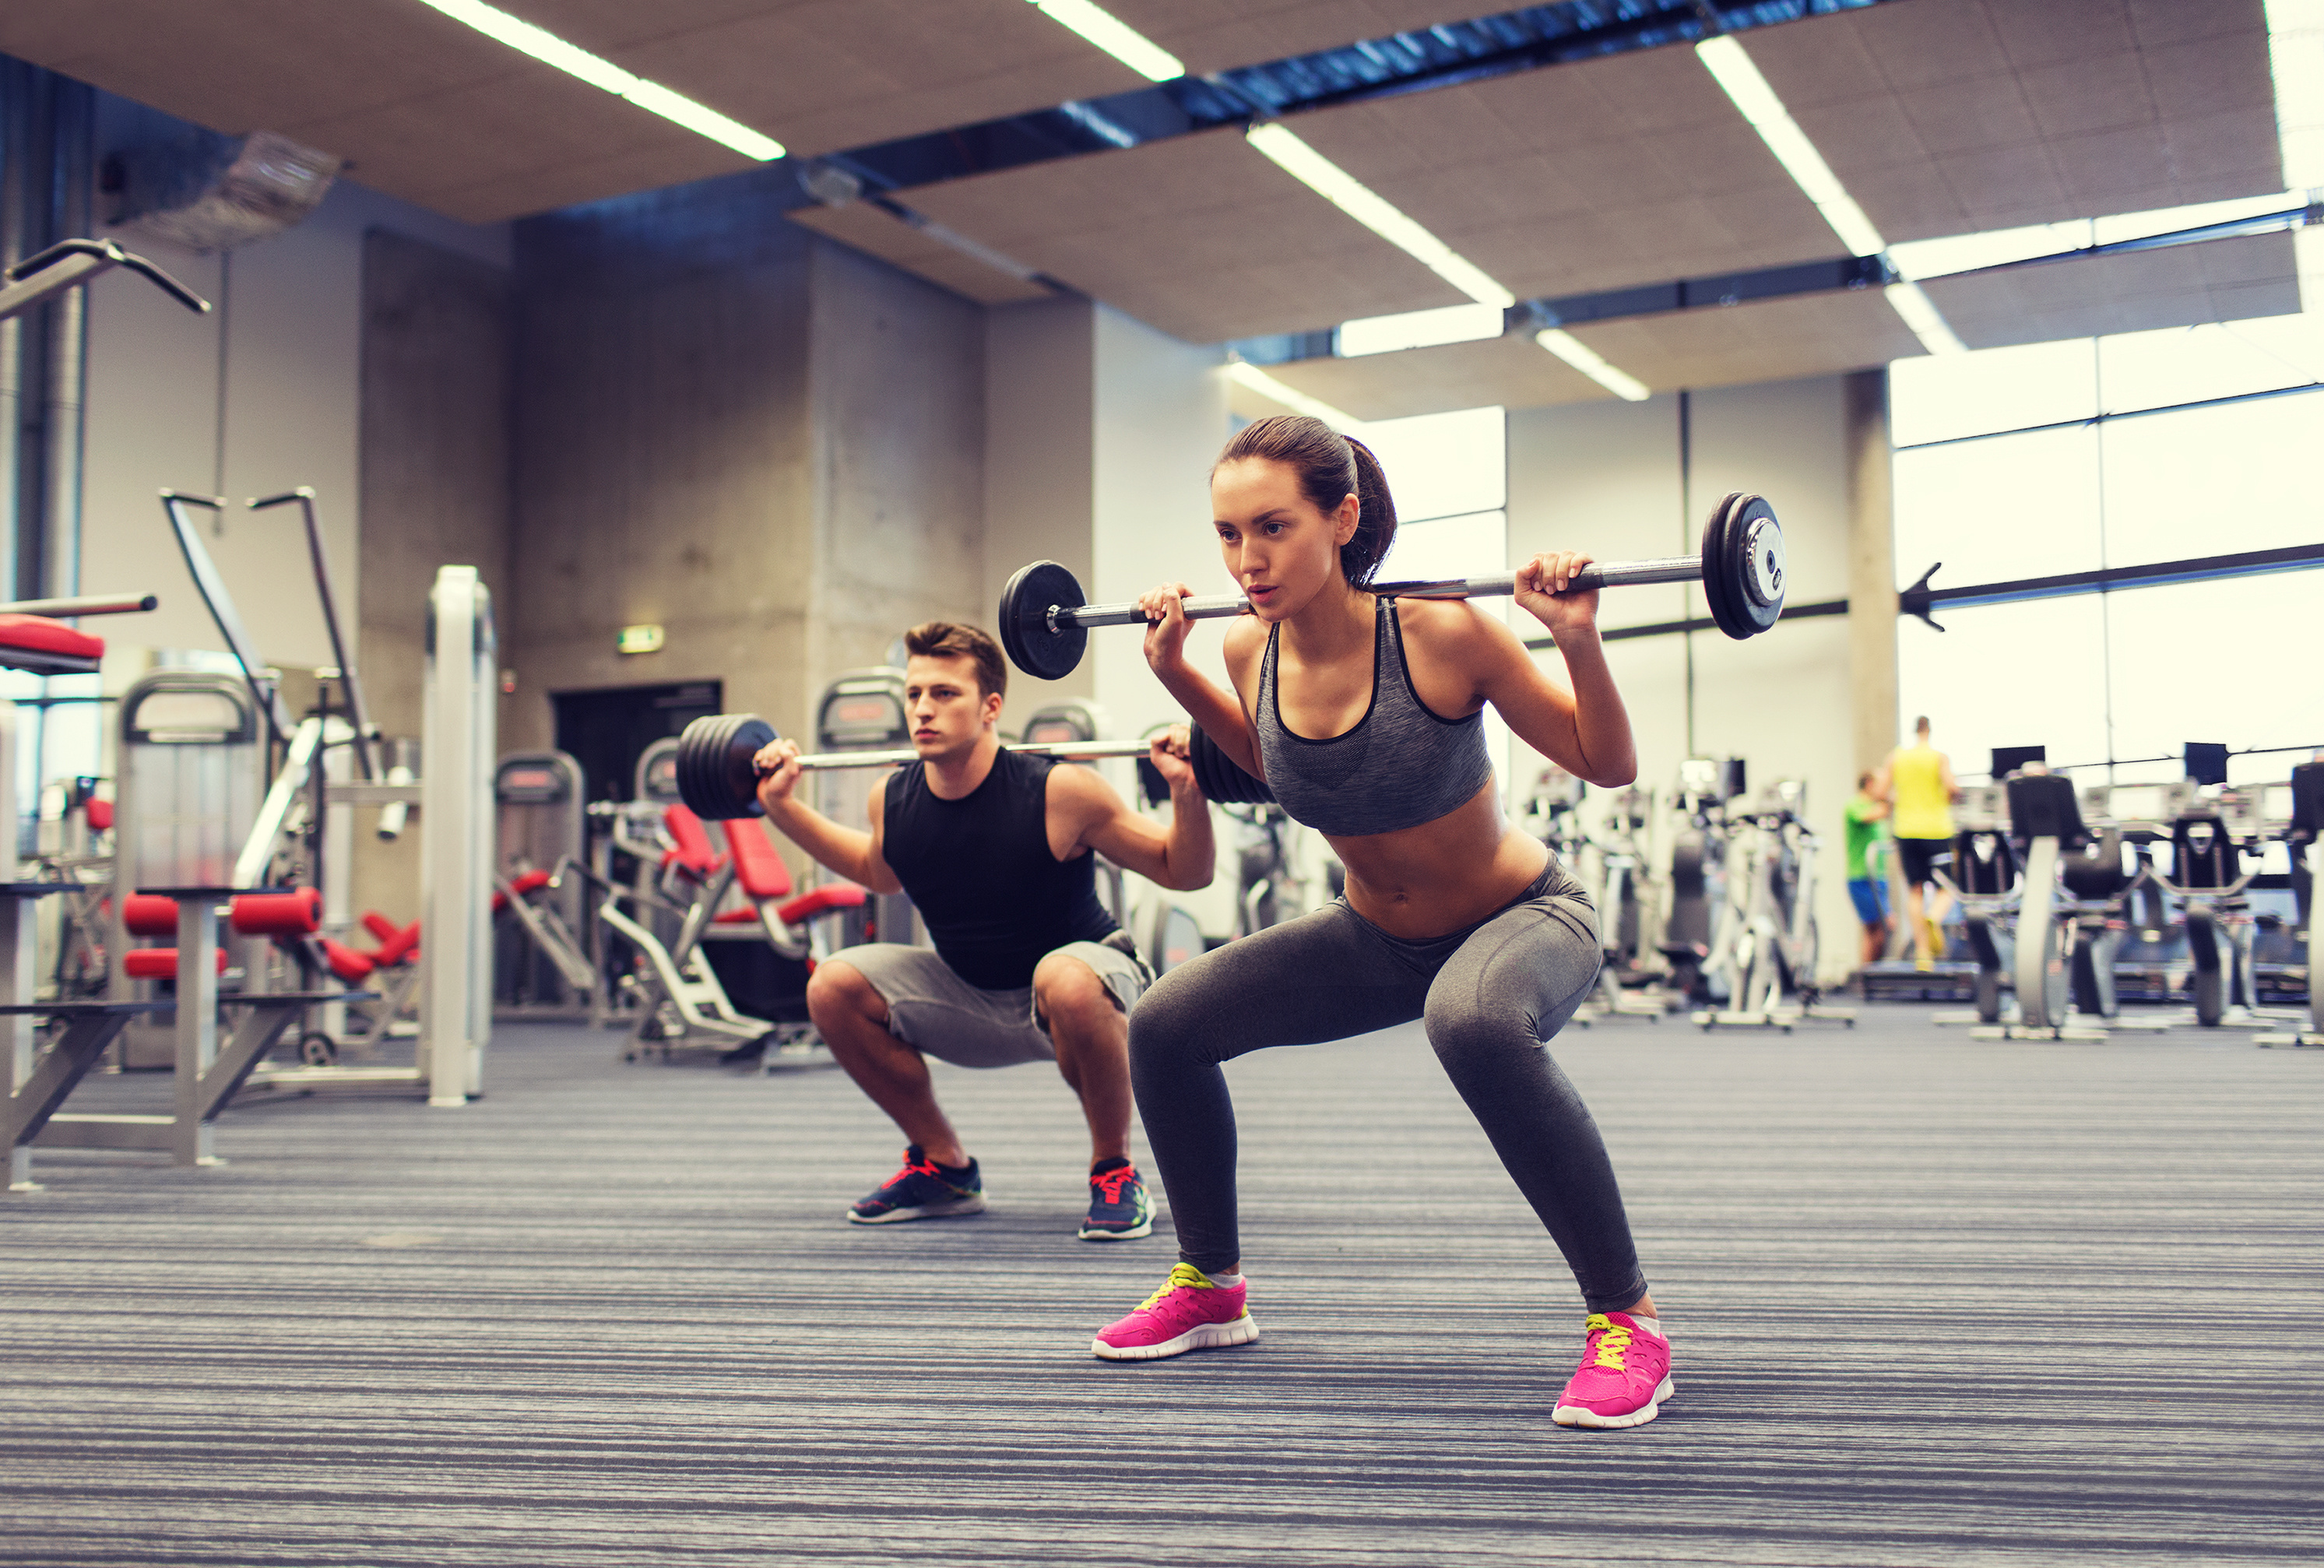 So You Want To Improve Your Squat...